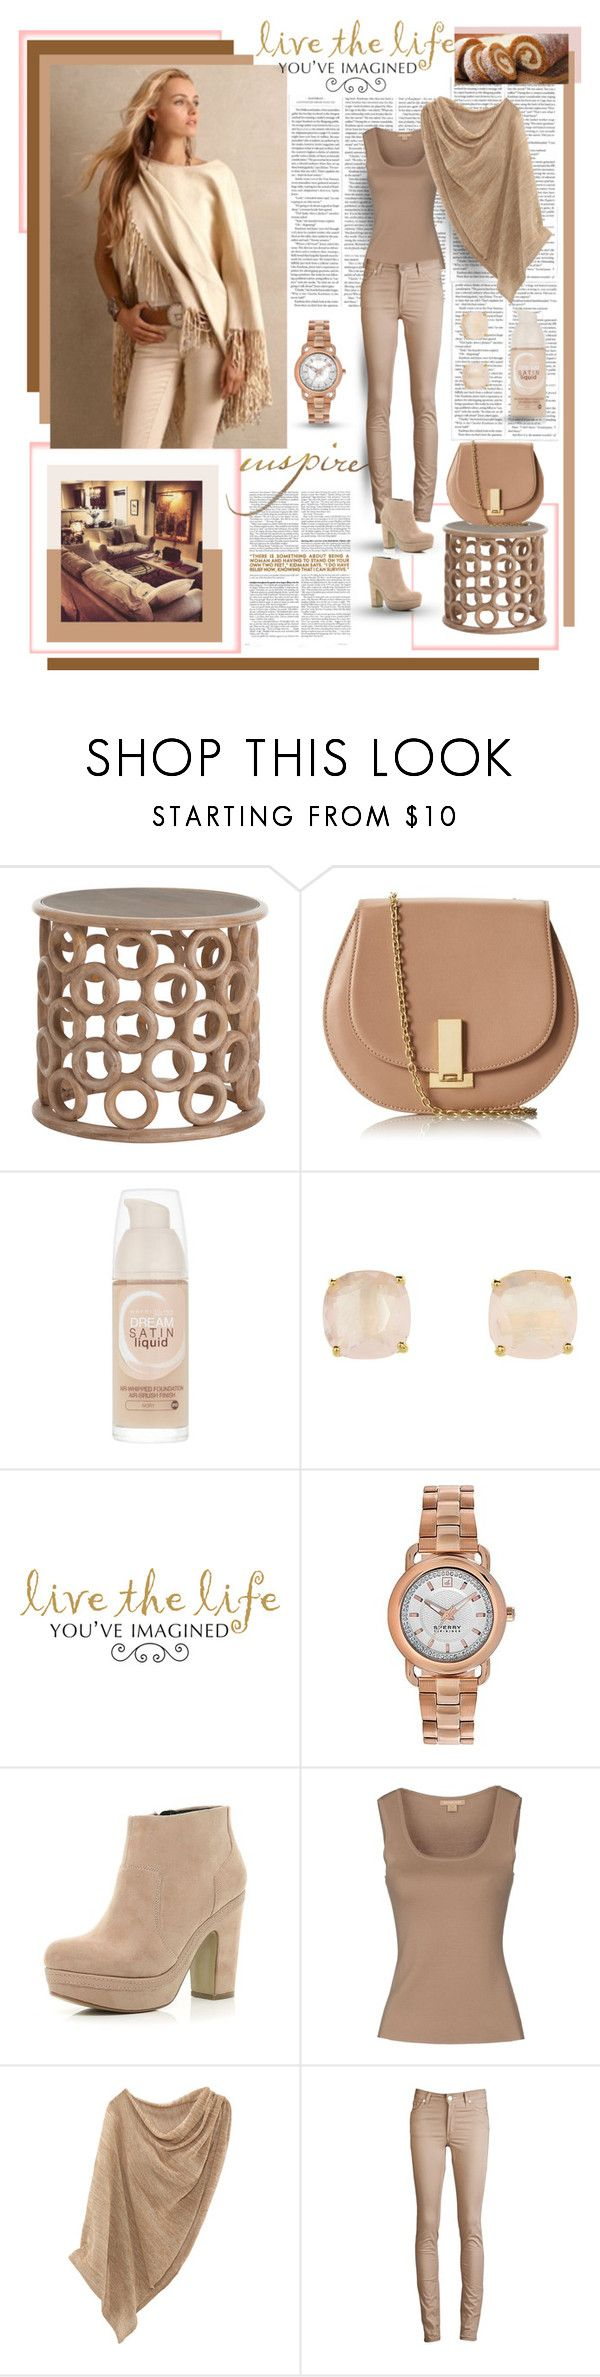 """""""Sperry Top Sider Hayden Bracelette Watch # 282"""" by dreamer1983 ❤ liked on Polyvore featuring ZAC Zac Posen, Maybelline, Kate Spade, WALL, Sperry, River Island, Michael Kors and Acne Studios"""